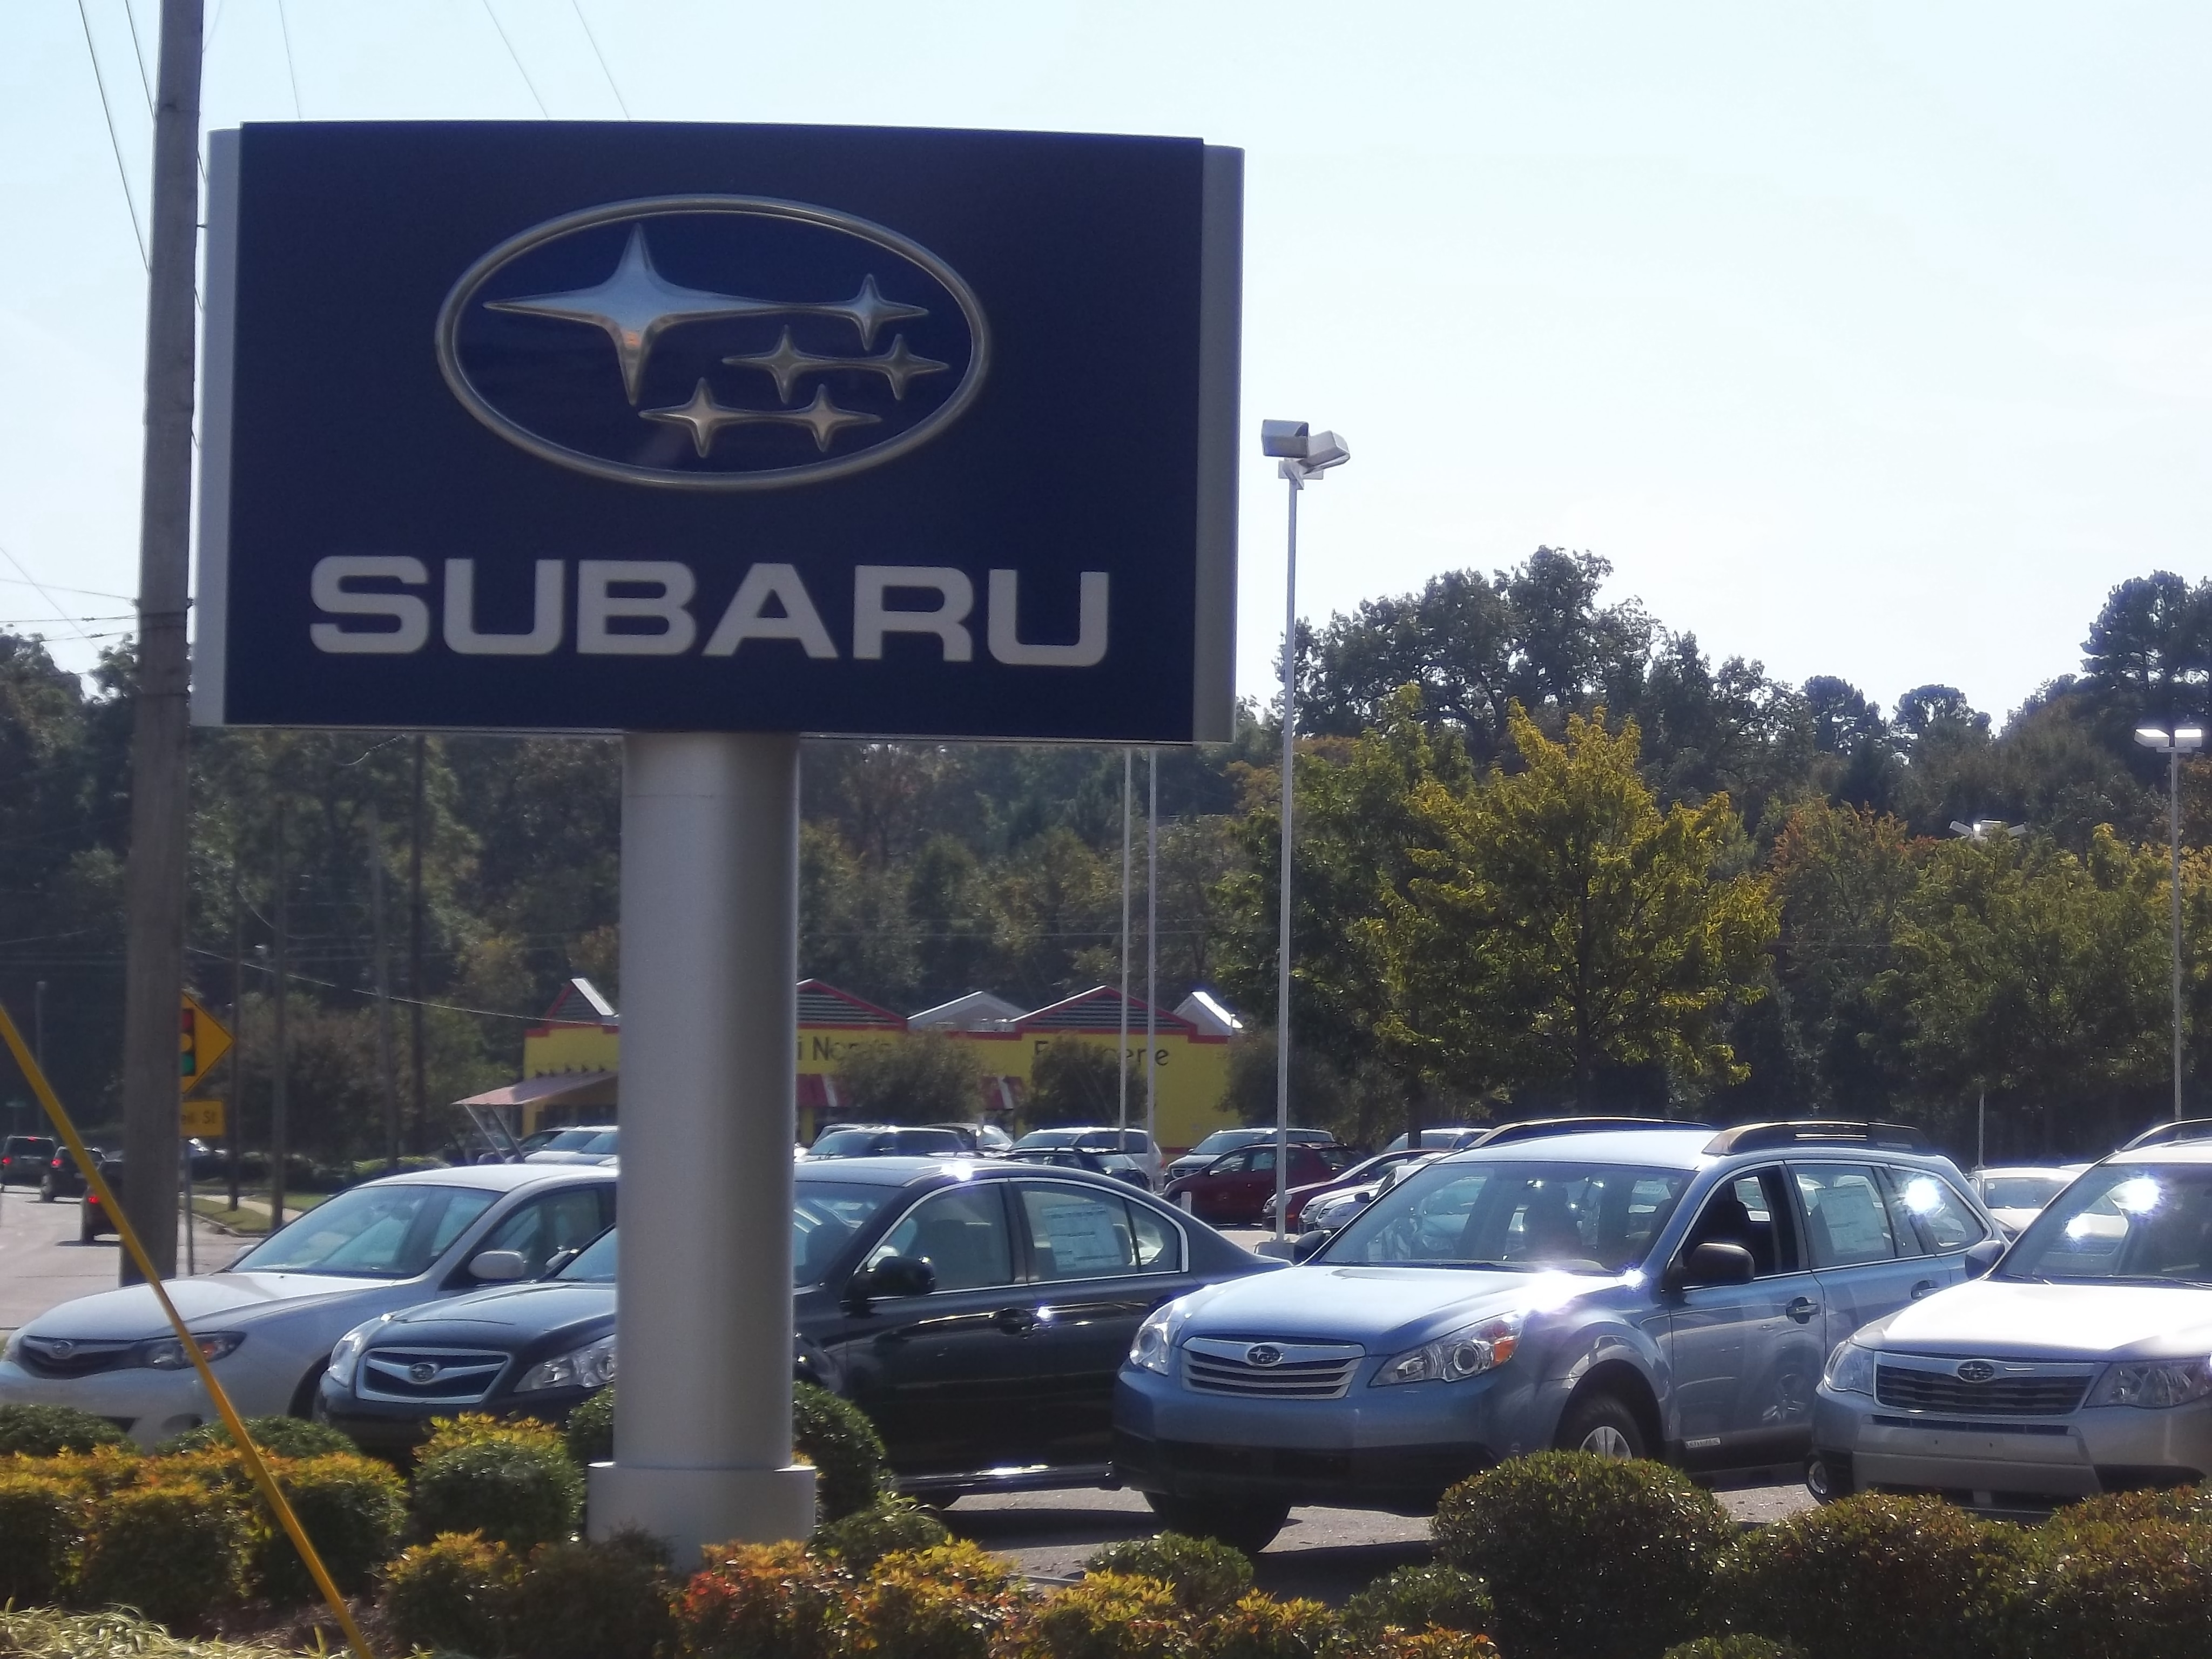 southern states subaru new subaru dealership in raleigh nc 27609. Black Bedroom Furniture Sets. Home Design Ideas